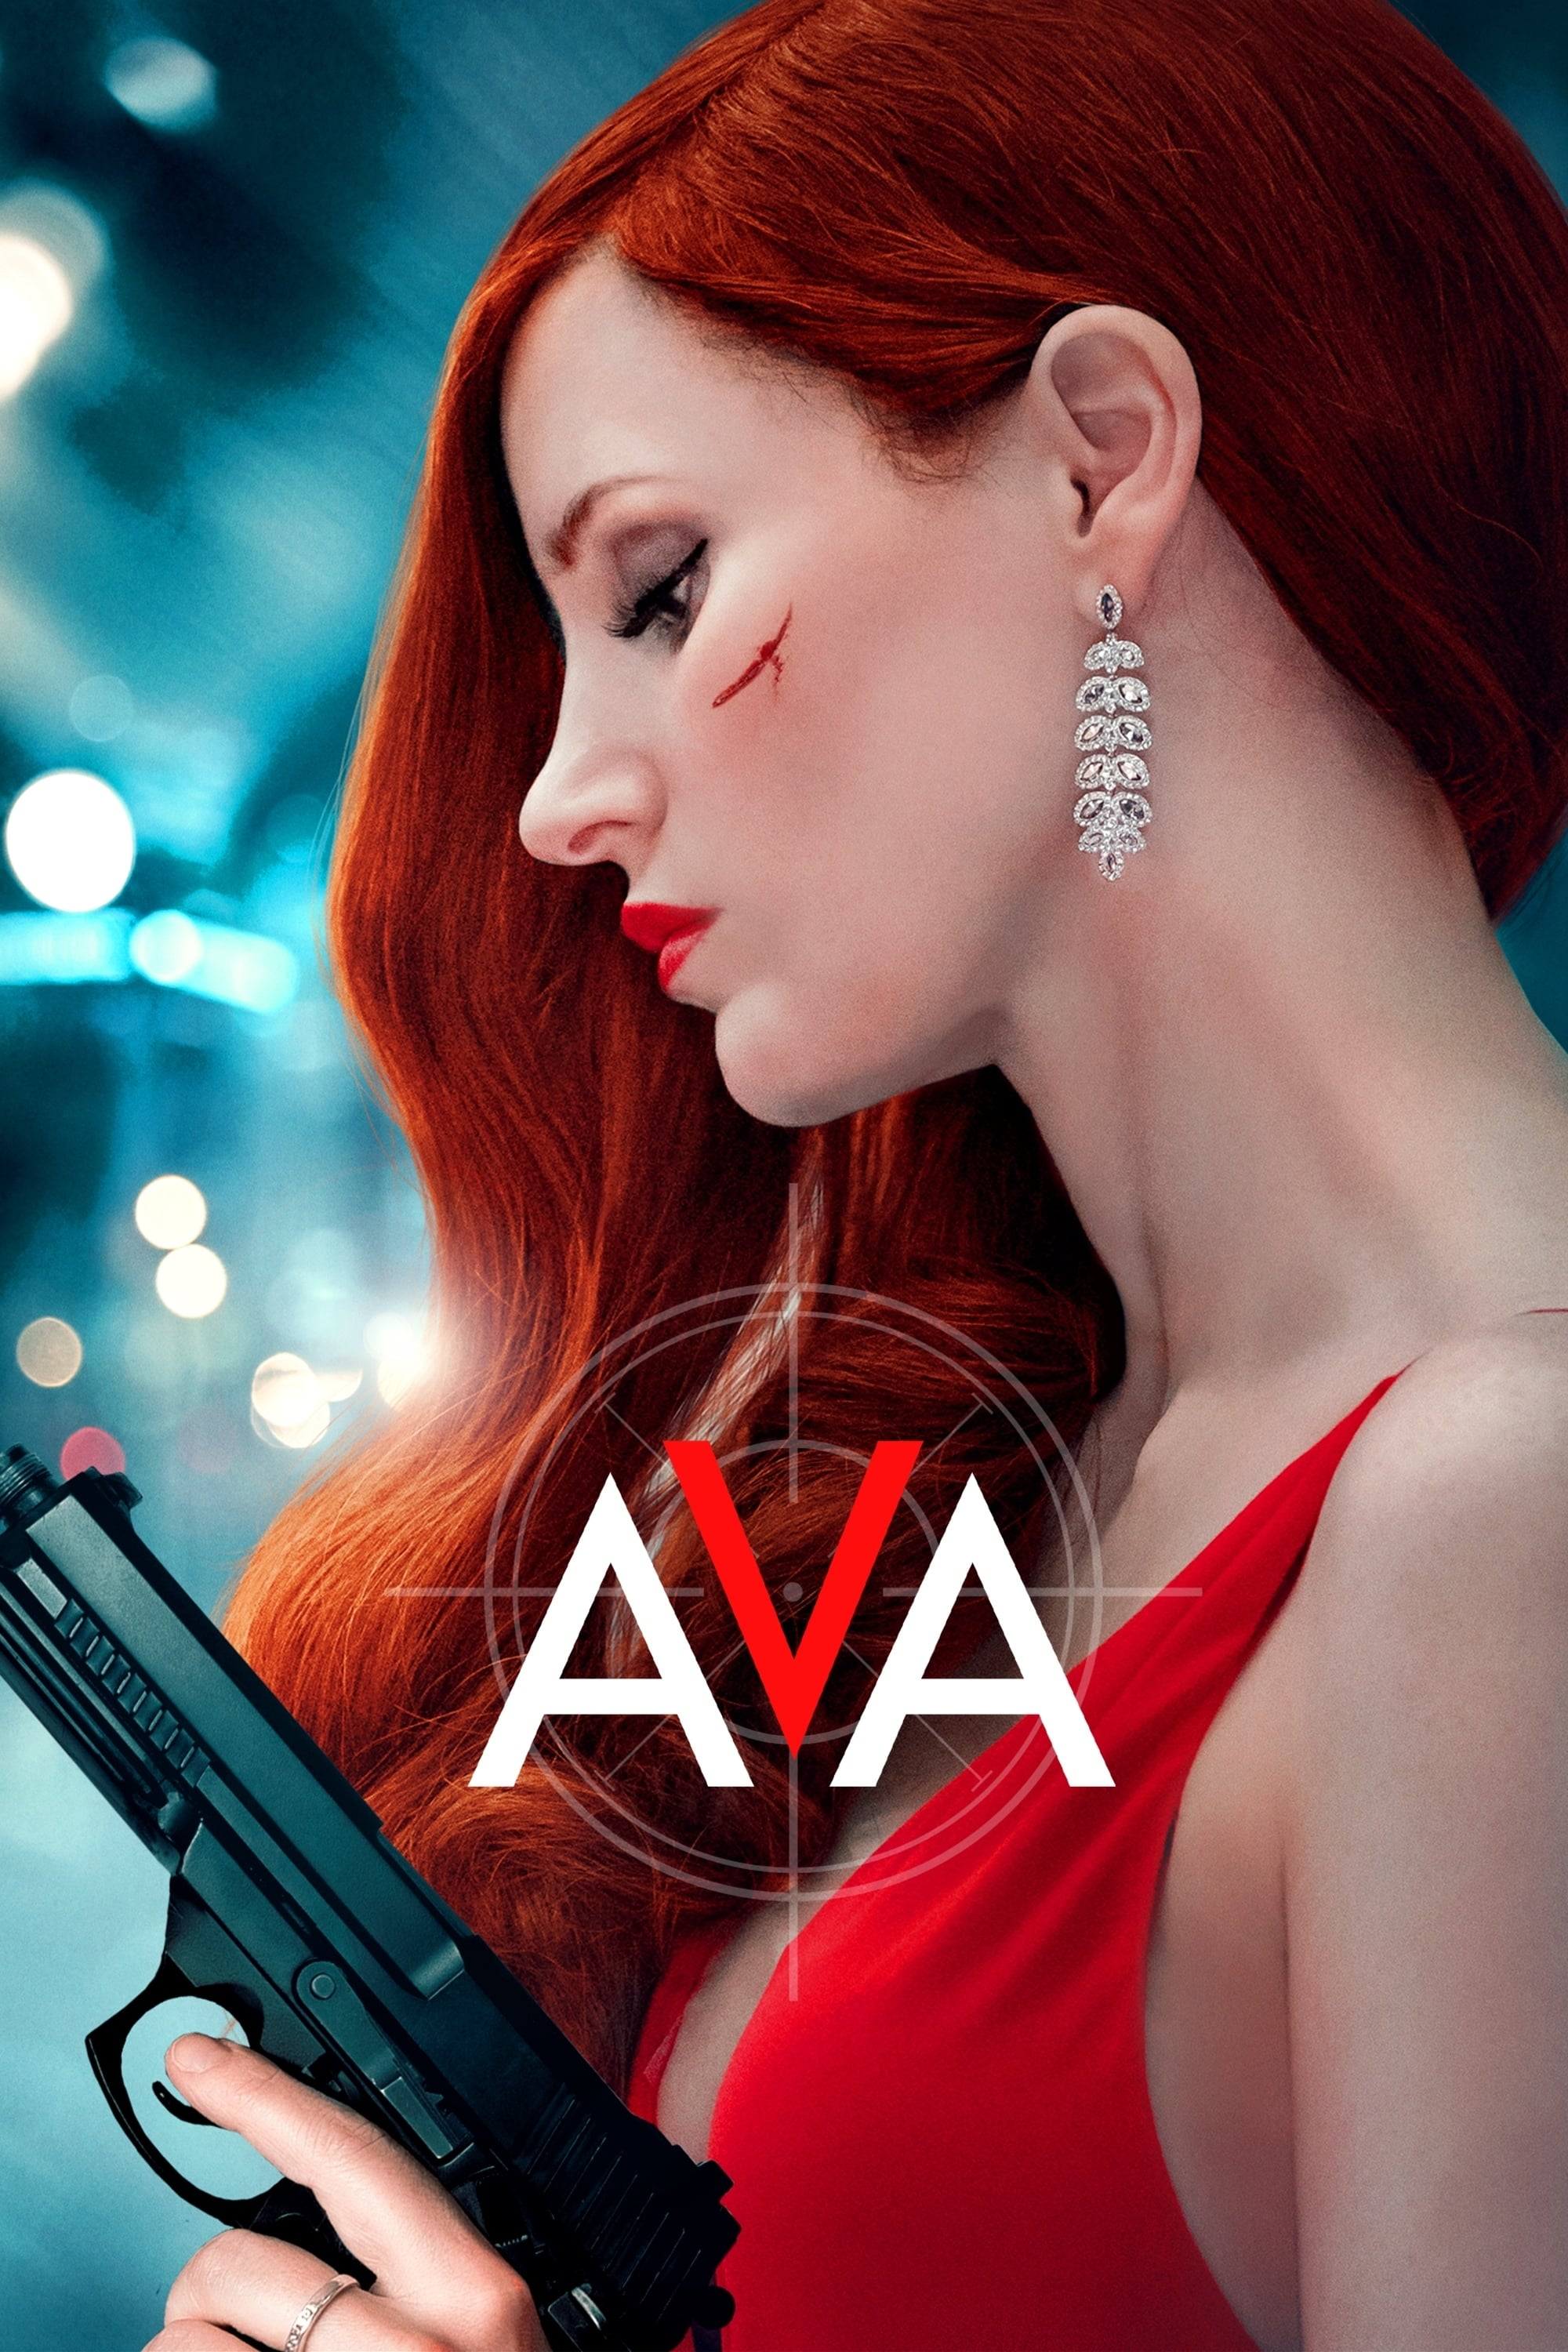 image for Ava